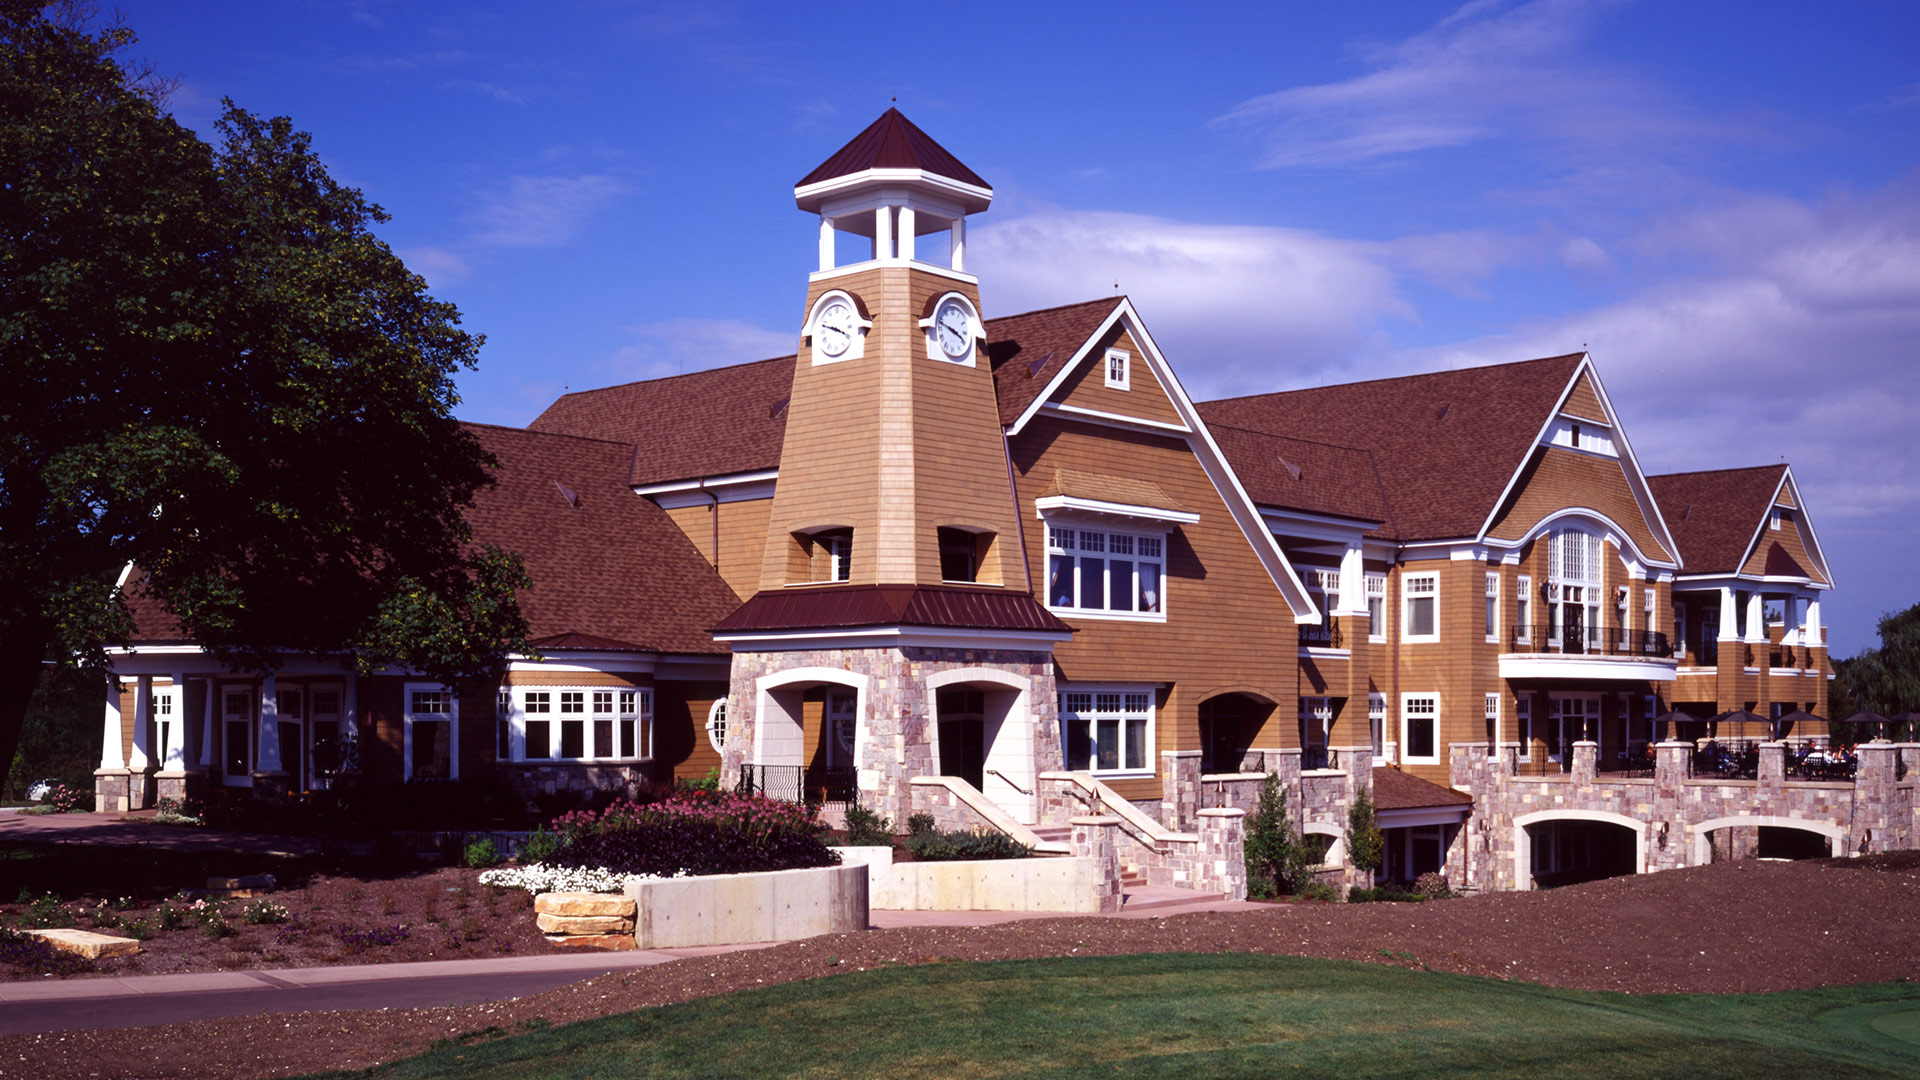 Wheaton Park District Arrowhead Golf Clubhouse